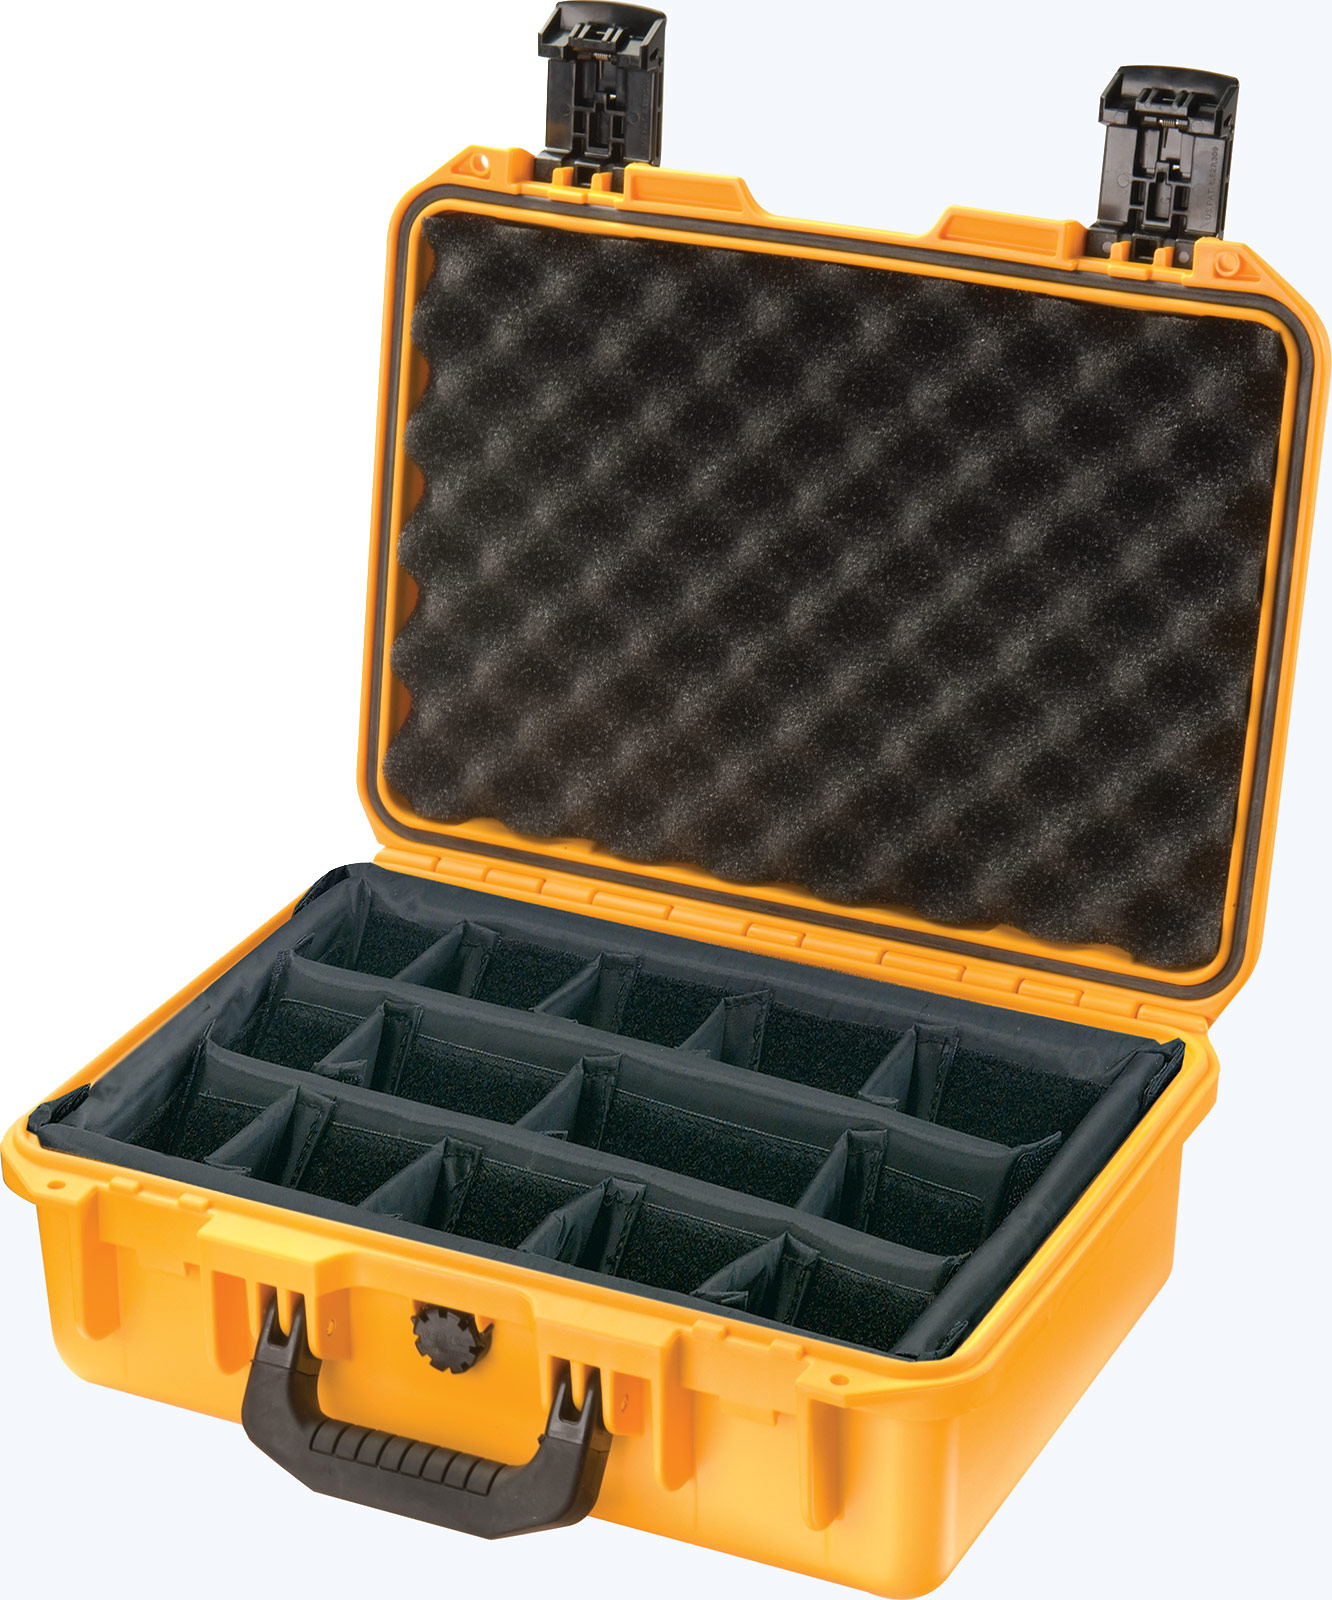 pelican im2200 padded divider yellow case